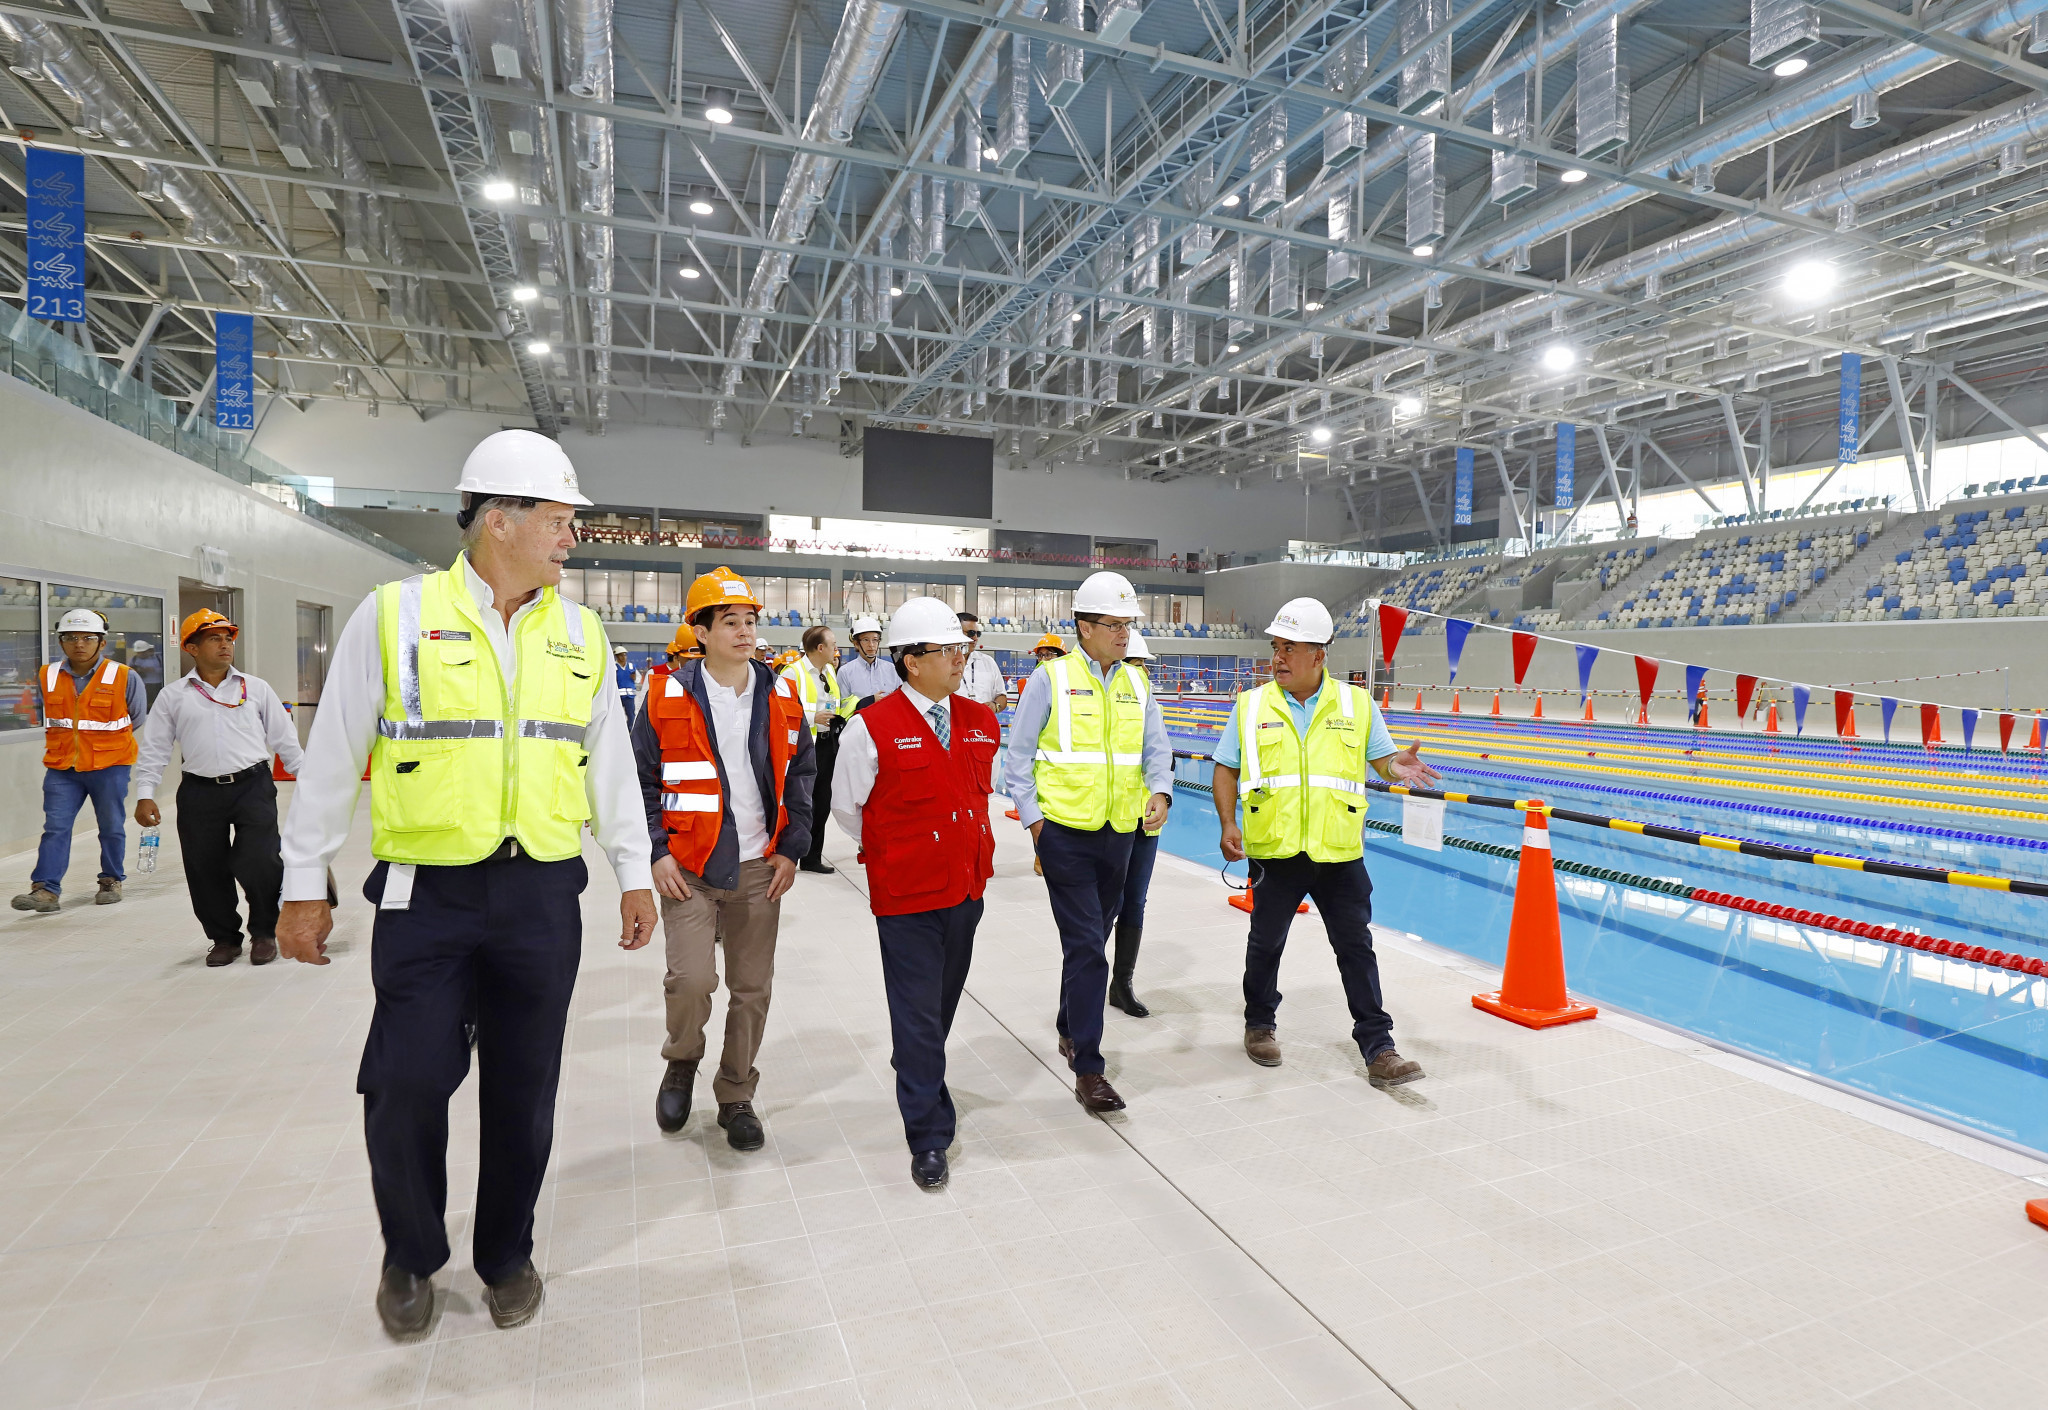 The Aquatic Centre was among the venues visited at the Videna National Sports Village ©Lima 2019